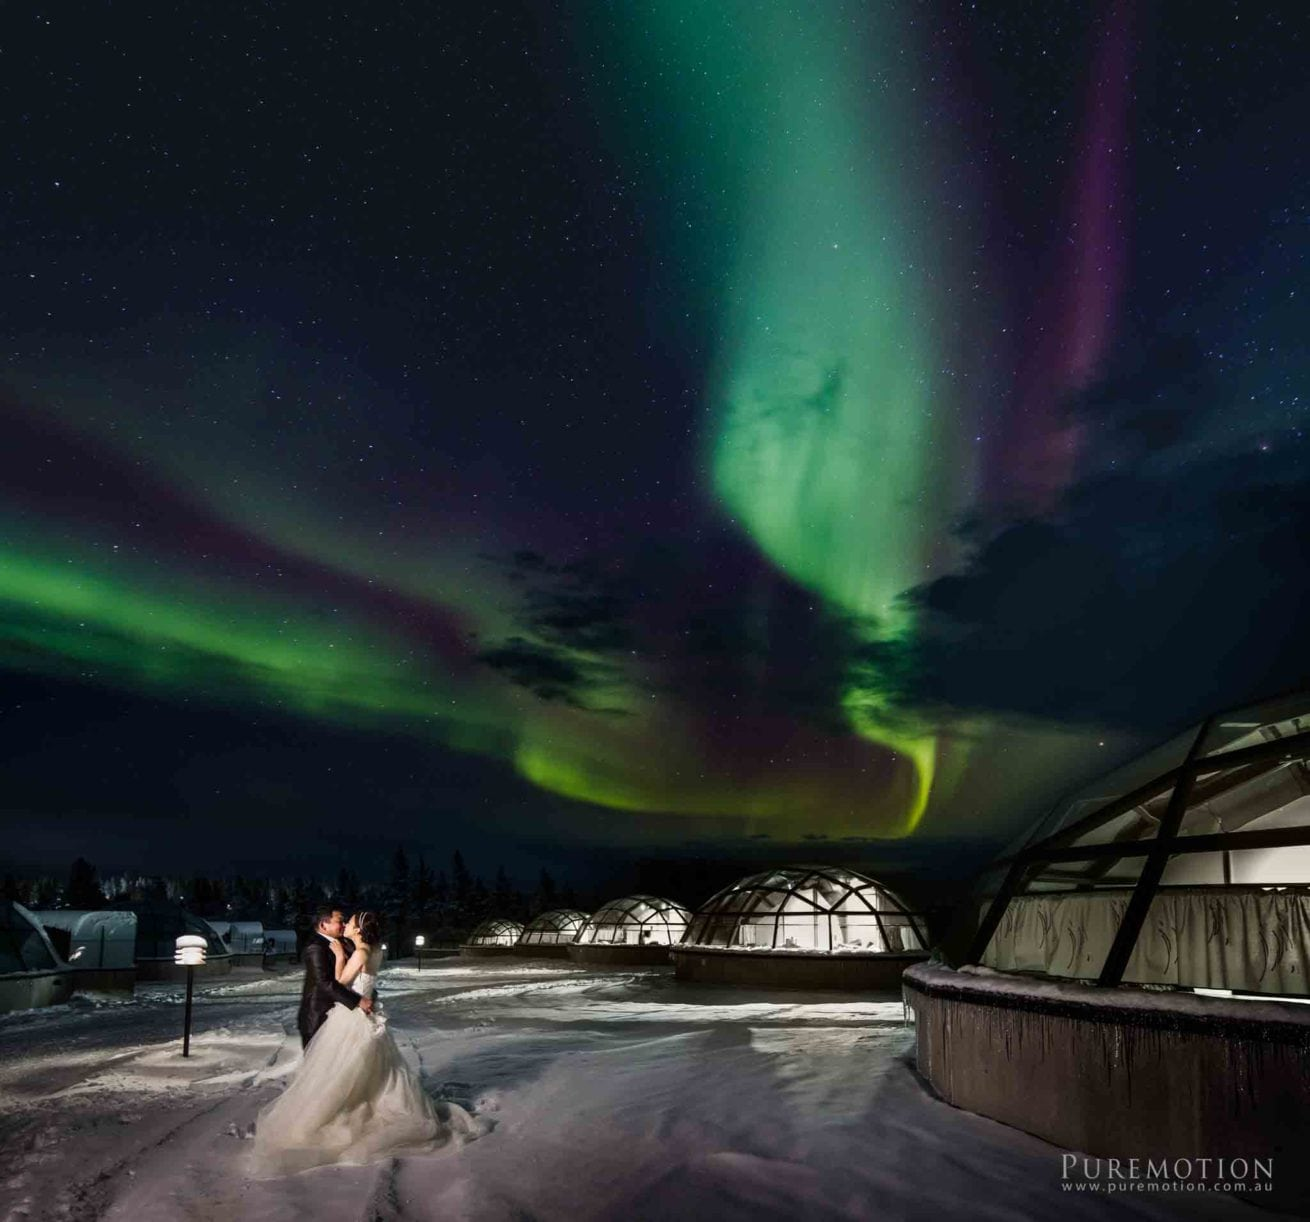 Aura lights for married couple in Iceland next to Igloos